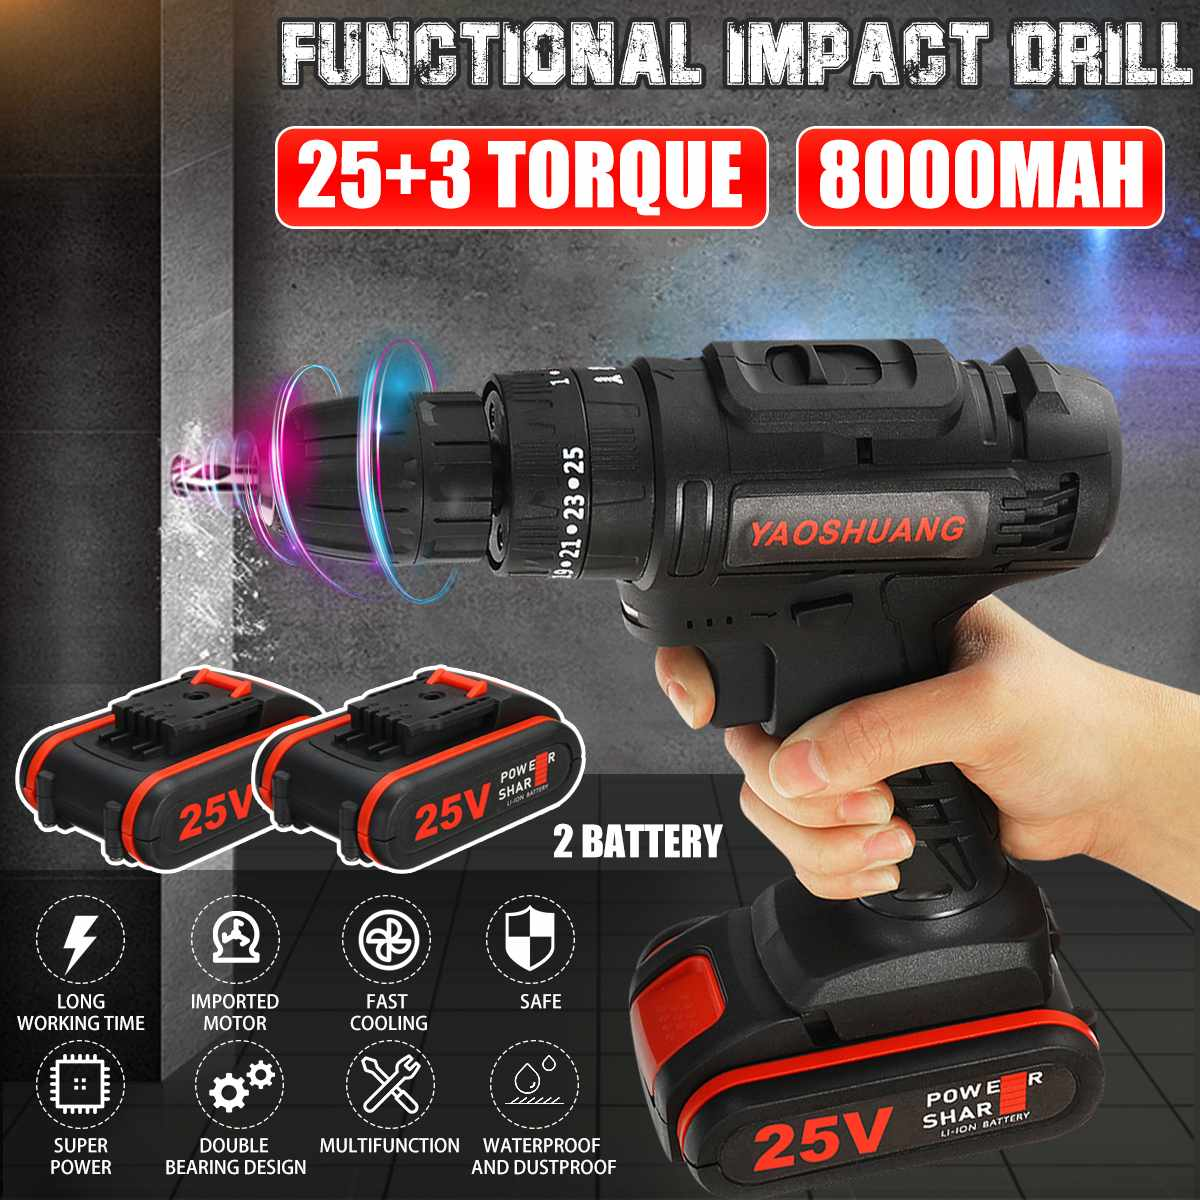 YAOSHUANG 25V 3/8 <font><b>Cordless</b></font> Rechargeable <font><b>Electric</b></font> <font><b>Drill</b></font> <font><b>Impact</b></font> Hammer <font><b>Screwdriver</b></font> Power Battery <font><b>Drill</b></font> with <font><b>Drill</b></font> Bit 2 Battery image